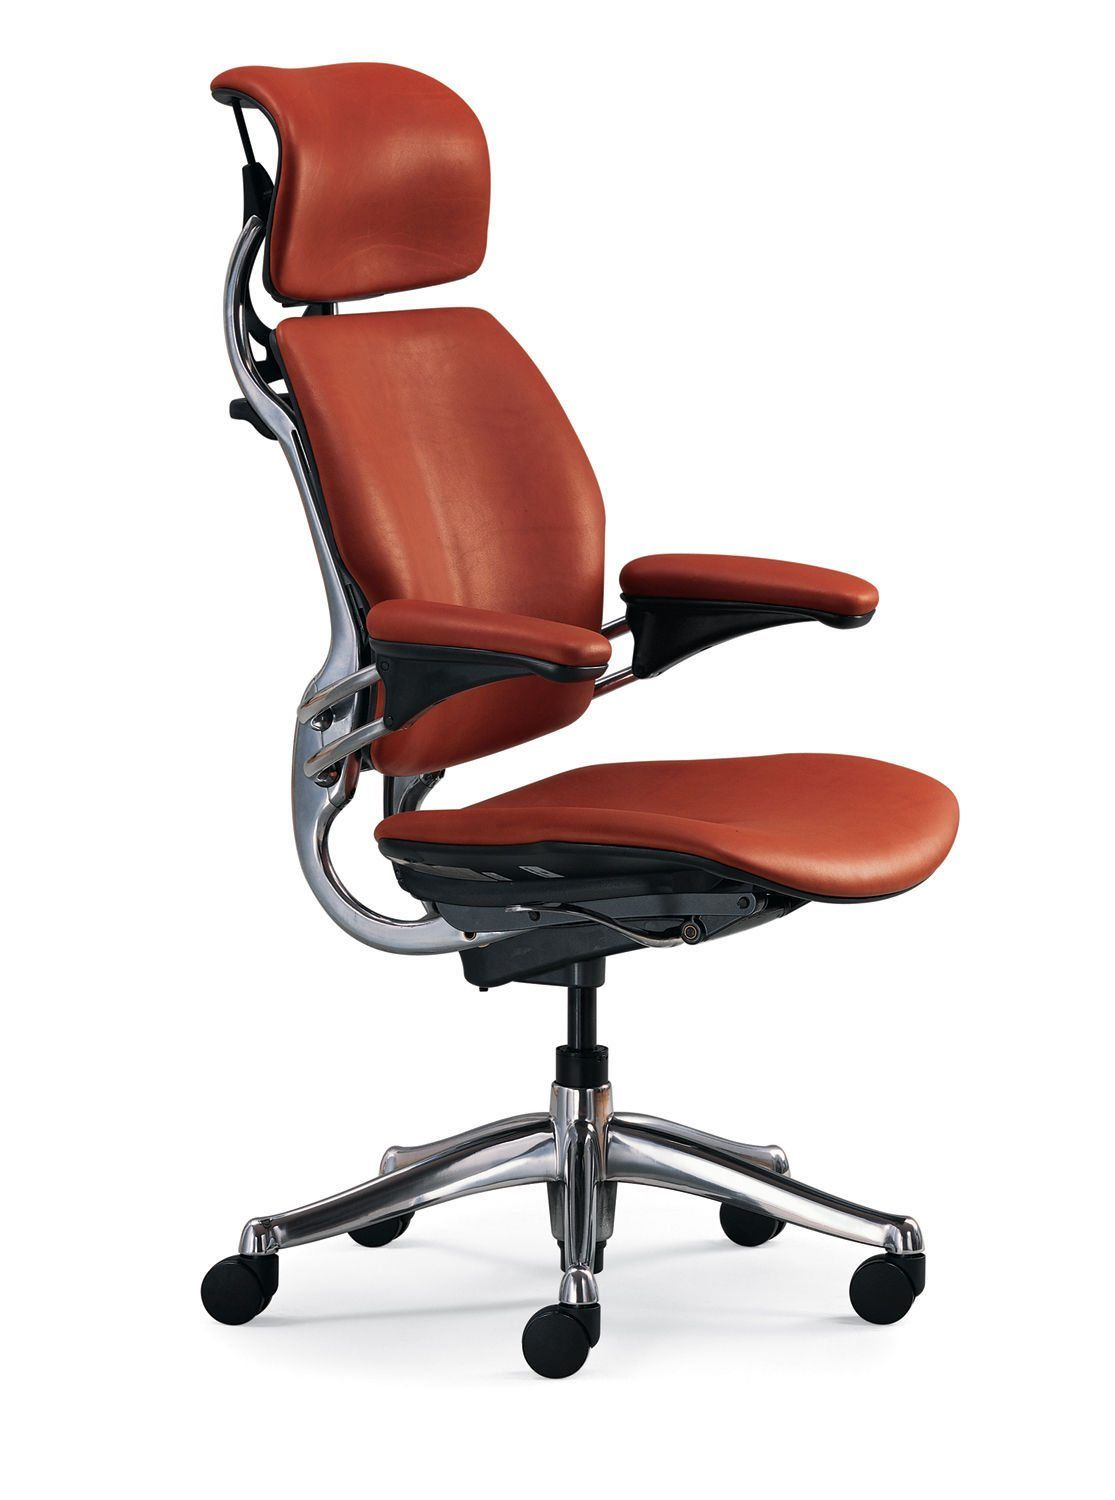 Best Ergonomic Office Chair Cute Freedom Office Chair Best Office Chair In 2019 Office